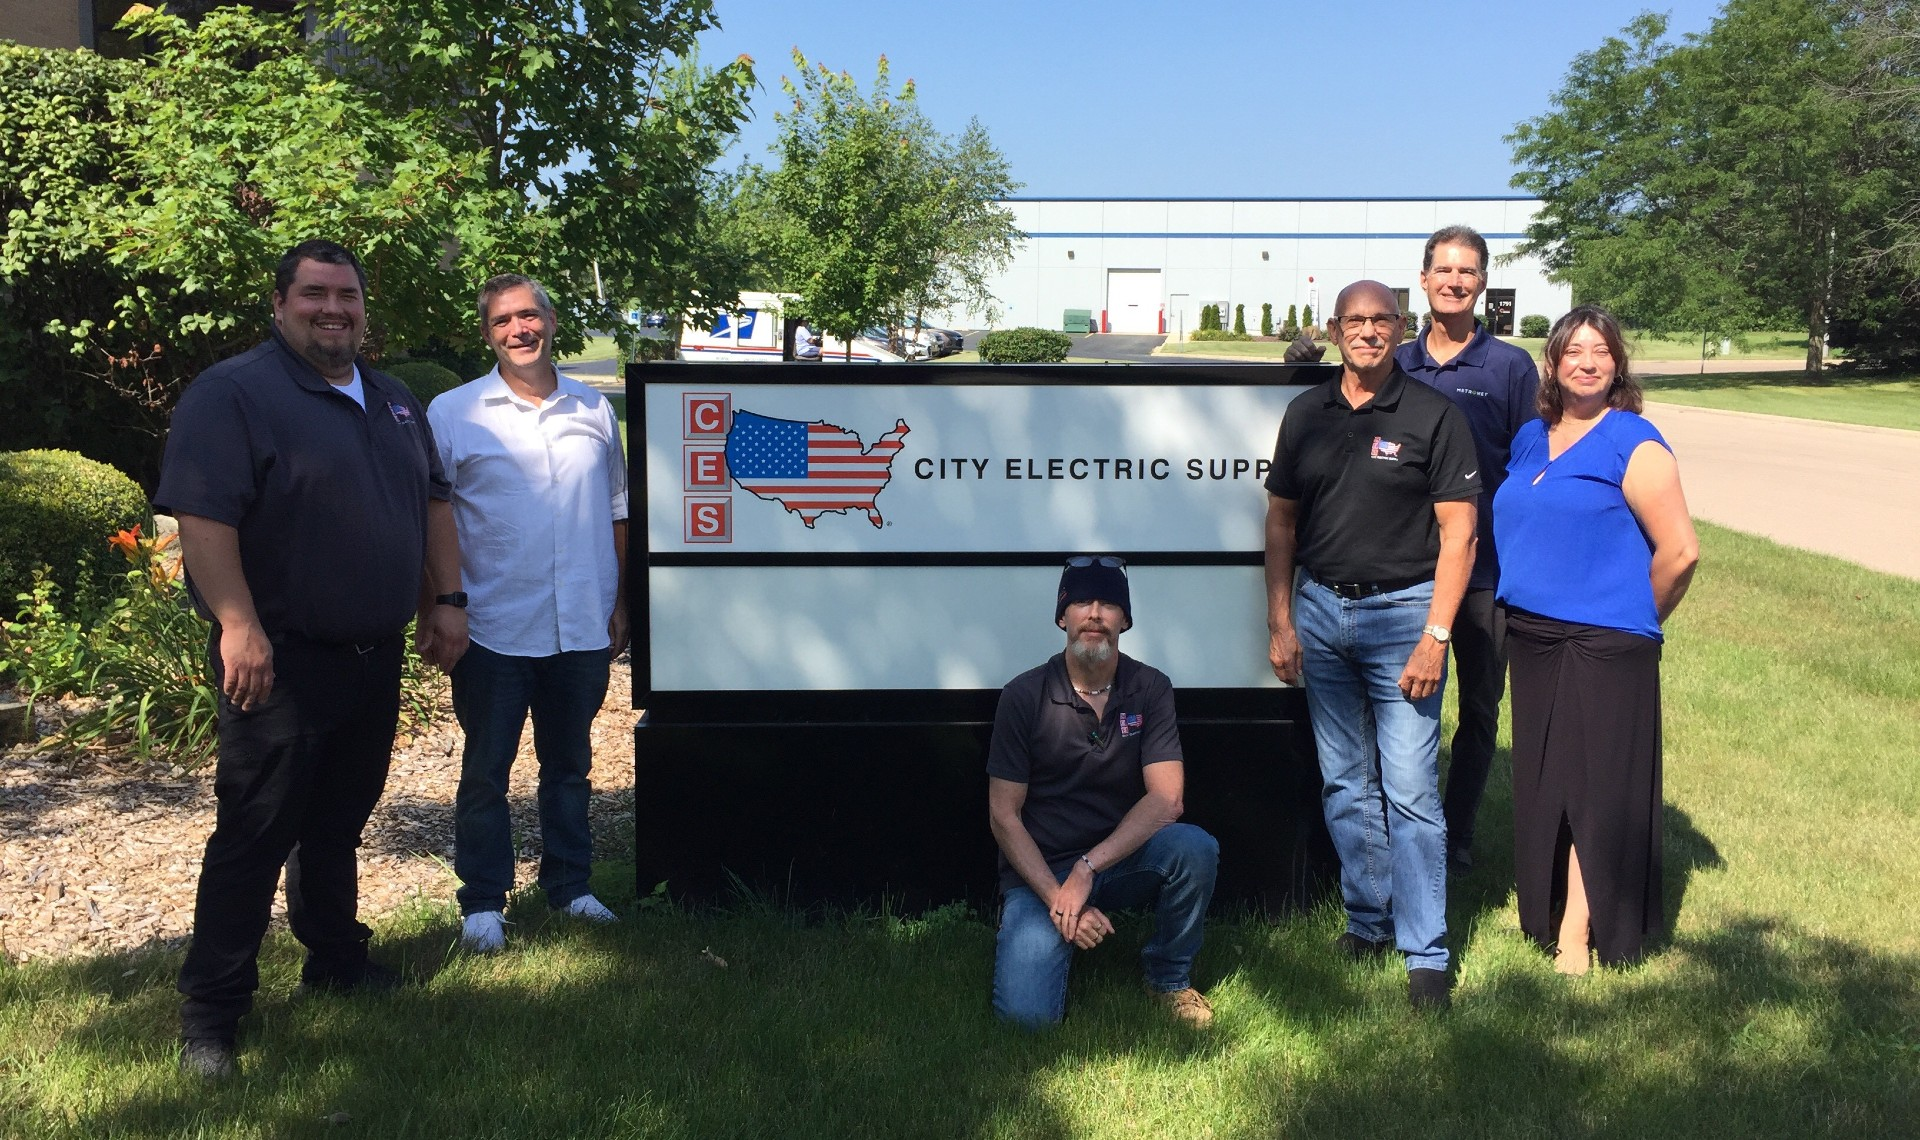 Welcome new Chamber Member City Electric Supply!